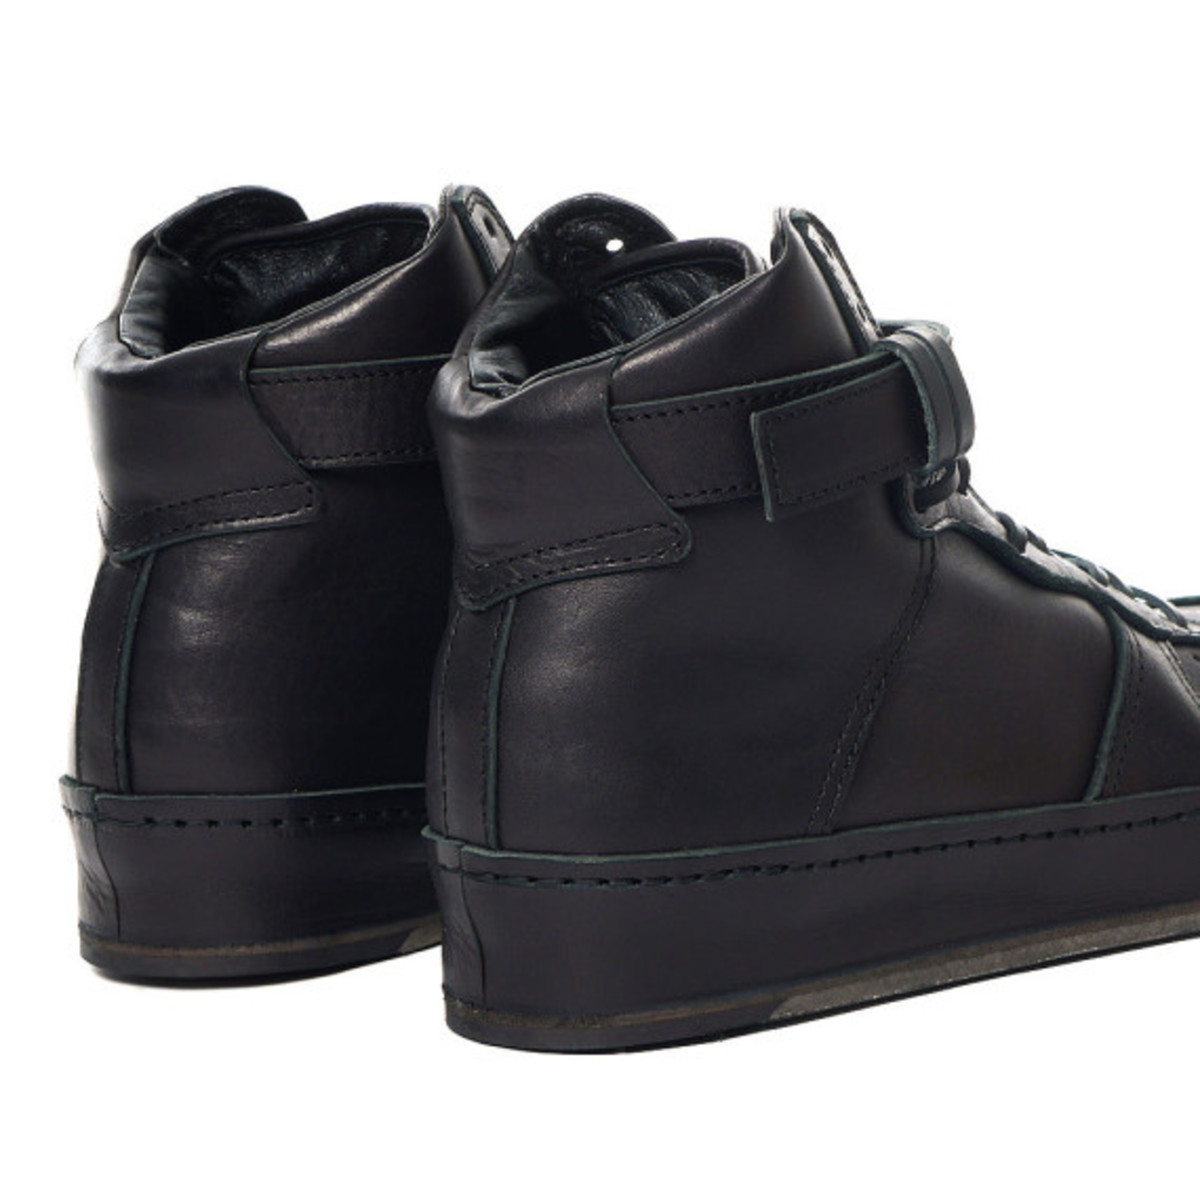 Hender Scheme - Manual Industrial Products 01 Black: Inspired by Nike Air Force 1 High - 1